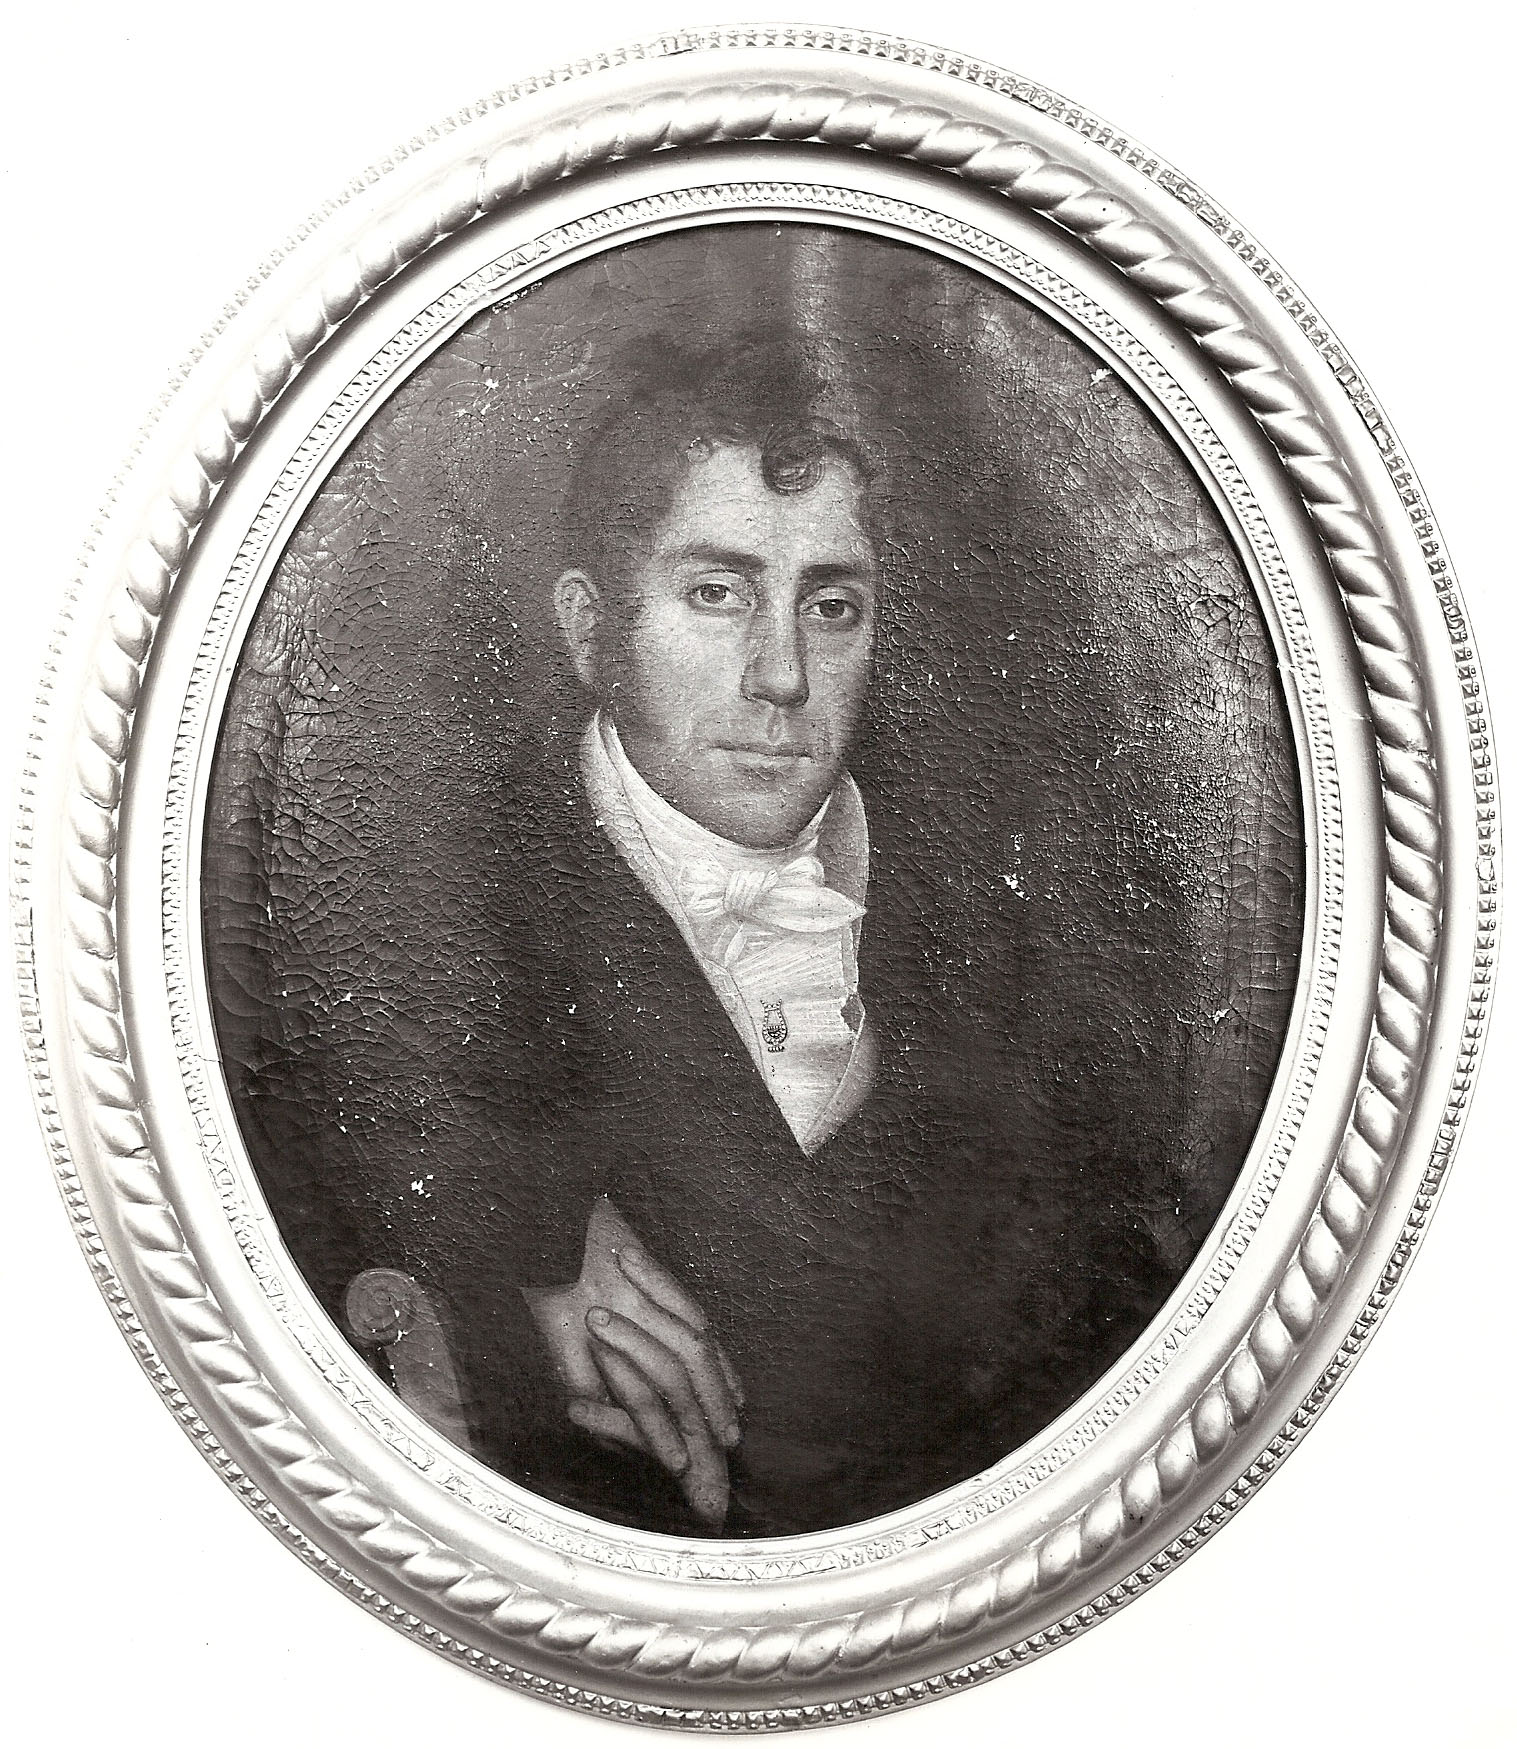 William Fairfax Gray, Clerk 1837-1840